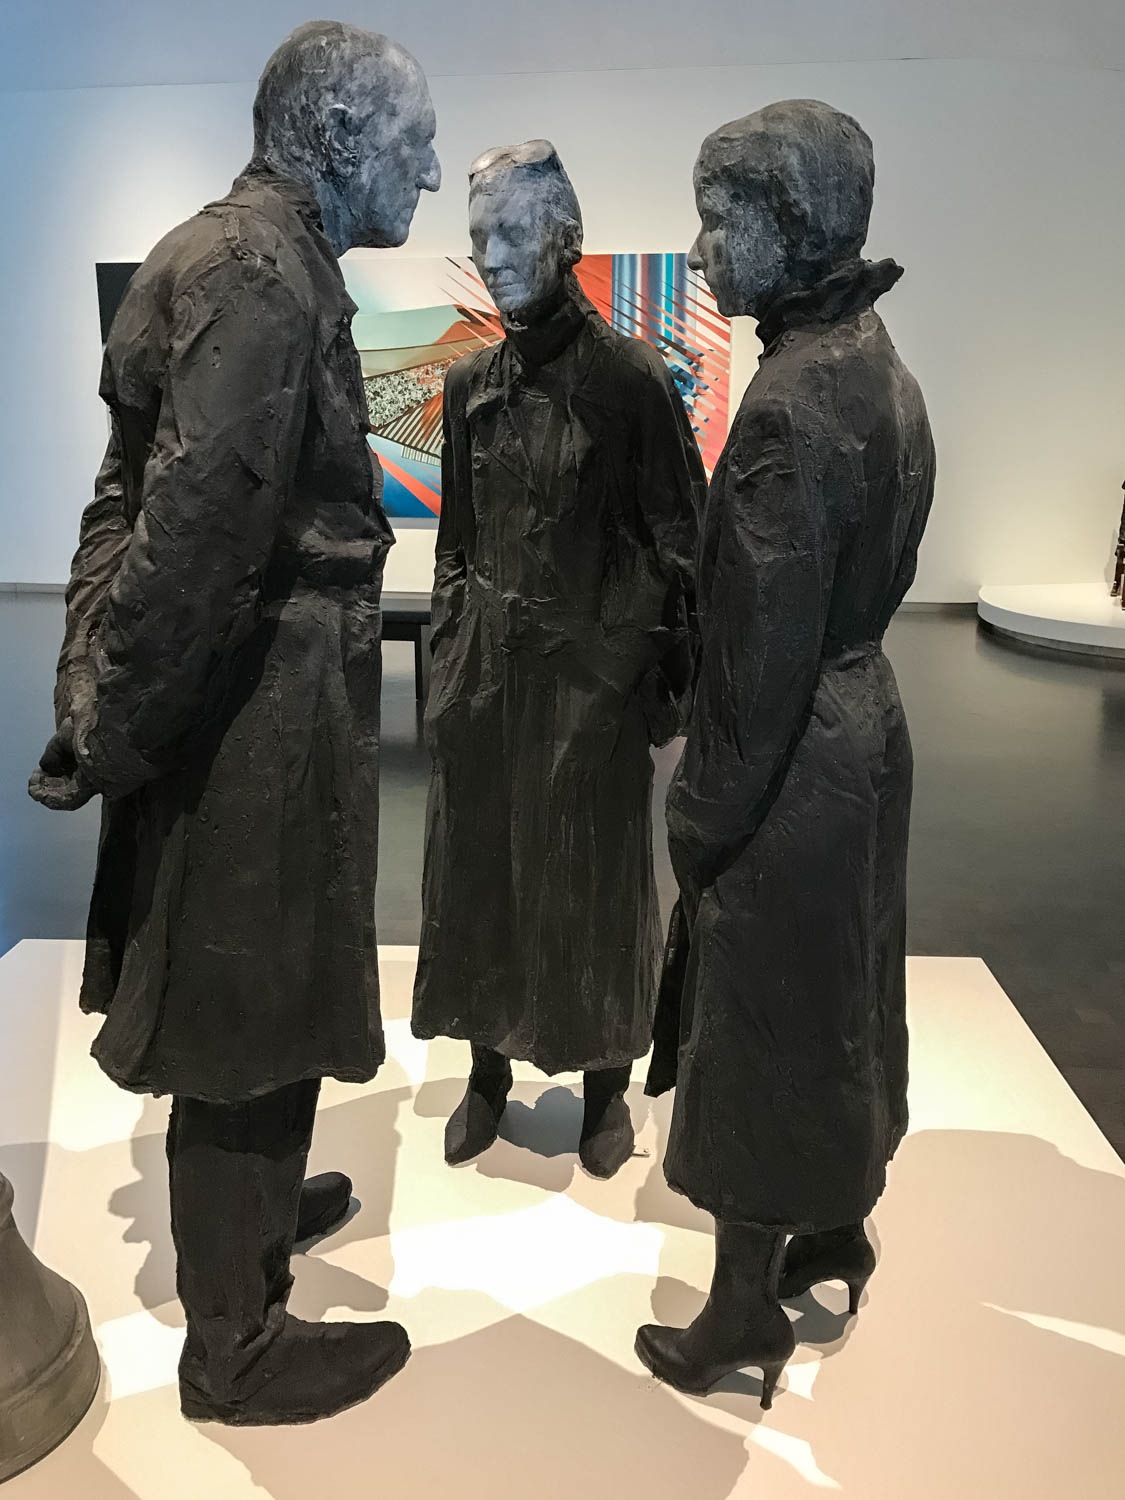 """Chance Meeting, 1989 by George Segal (1924-2000, Plaster, aluminum and galvanized steel. """" Chance Meeting """" represents one of George Segal's favorite motifs:people on city streets. . . This pose, along with the title, implies that they are friends or acquaintances who have unexpectedly met on the street. Segal often used family and friends as models. In  Chance Meeting, the woman wearing the high heels is the artist's daughter, Rena Segal. This plaster sculpture, part Pop Art and part Realism, contains details captured by the casting process, including folds in the clothing and even top stitching on seams."""""""